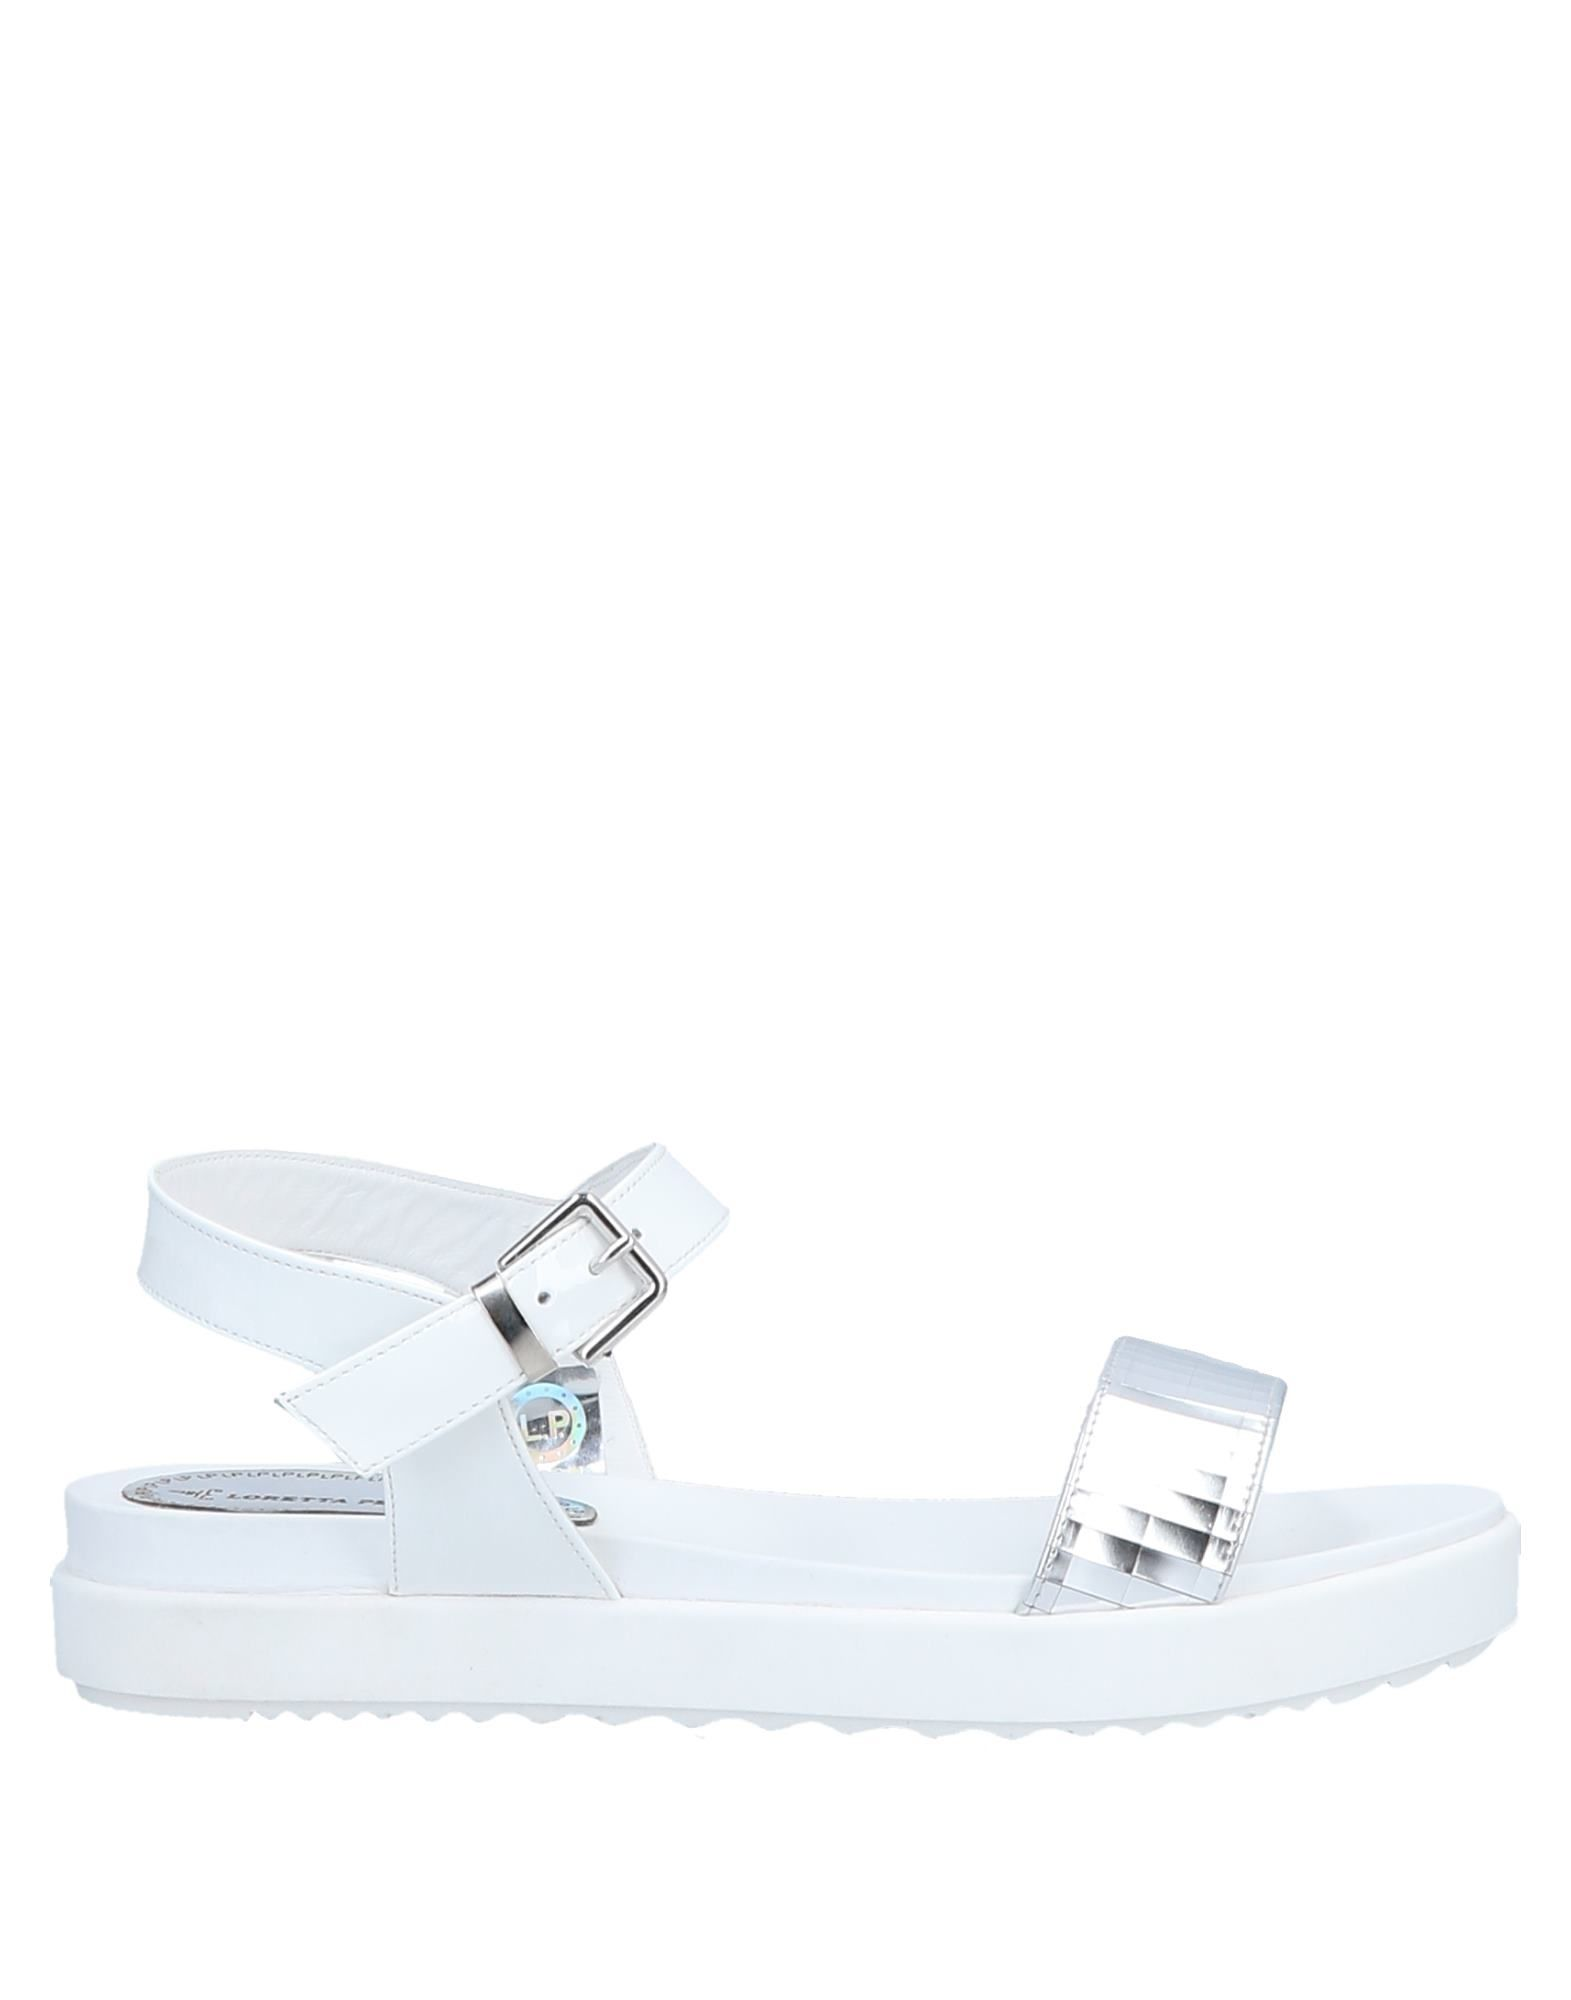 Loretta Pettinari Sandals - Women Loretta Pettinari Sandals  online on  Sandals United Kingdom - 11564984IO 04ae37